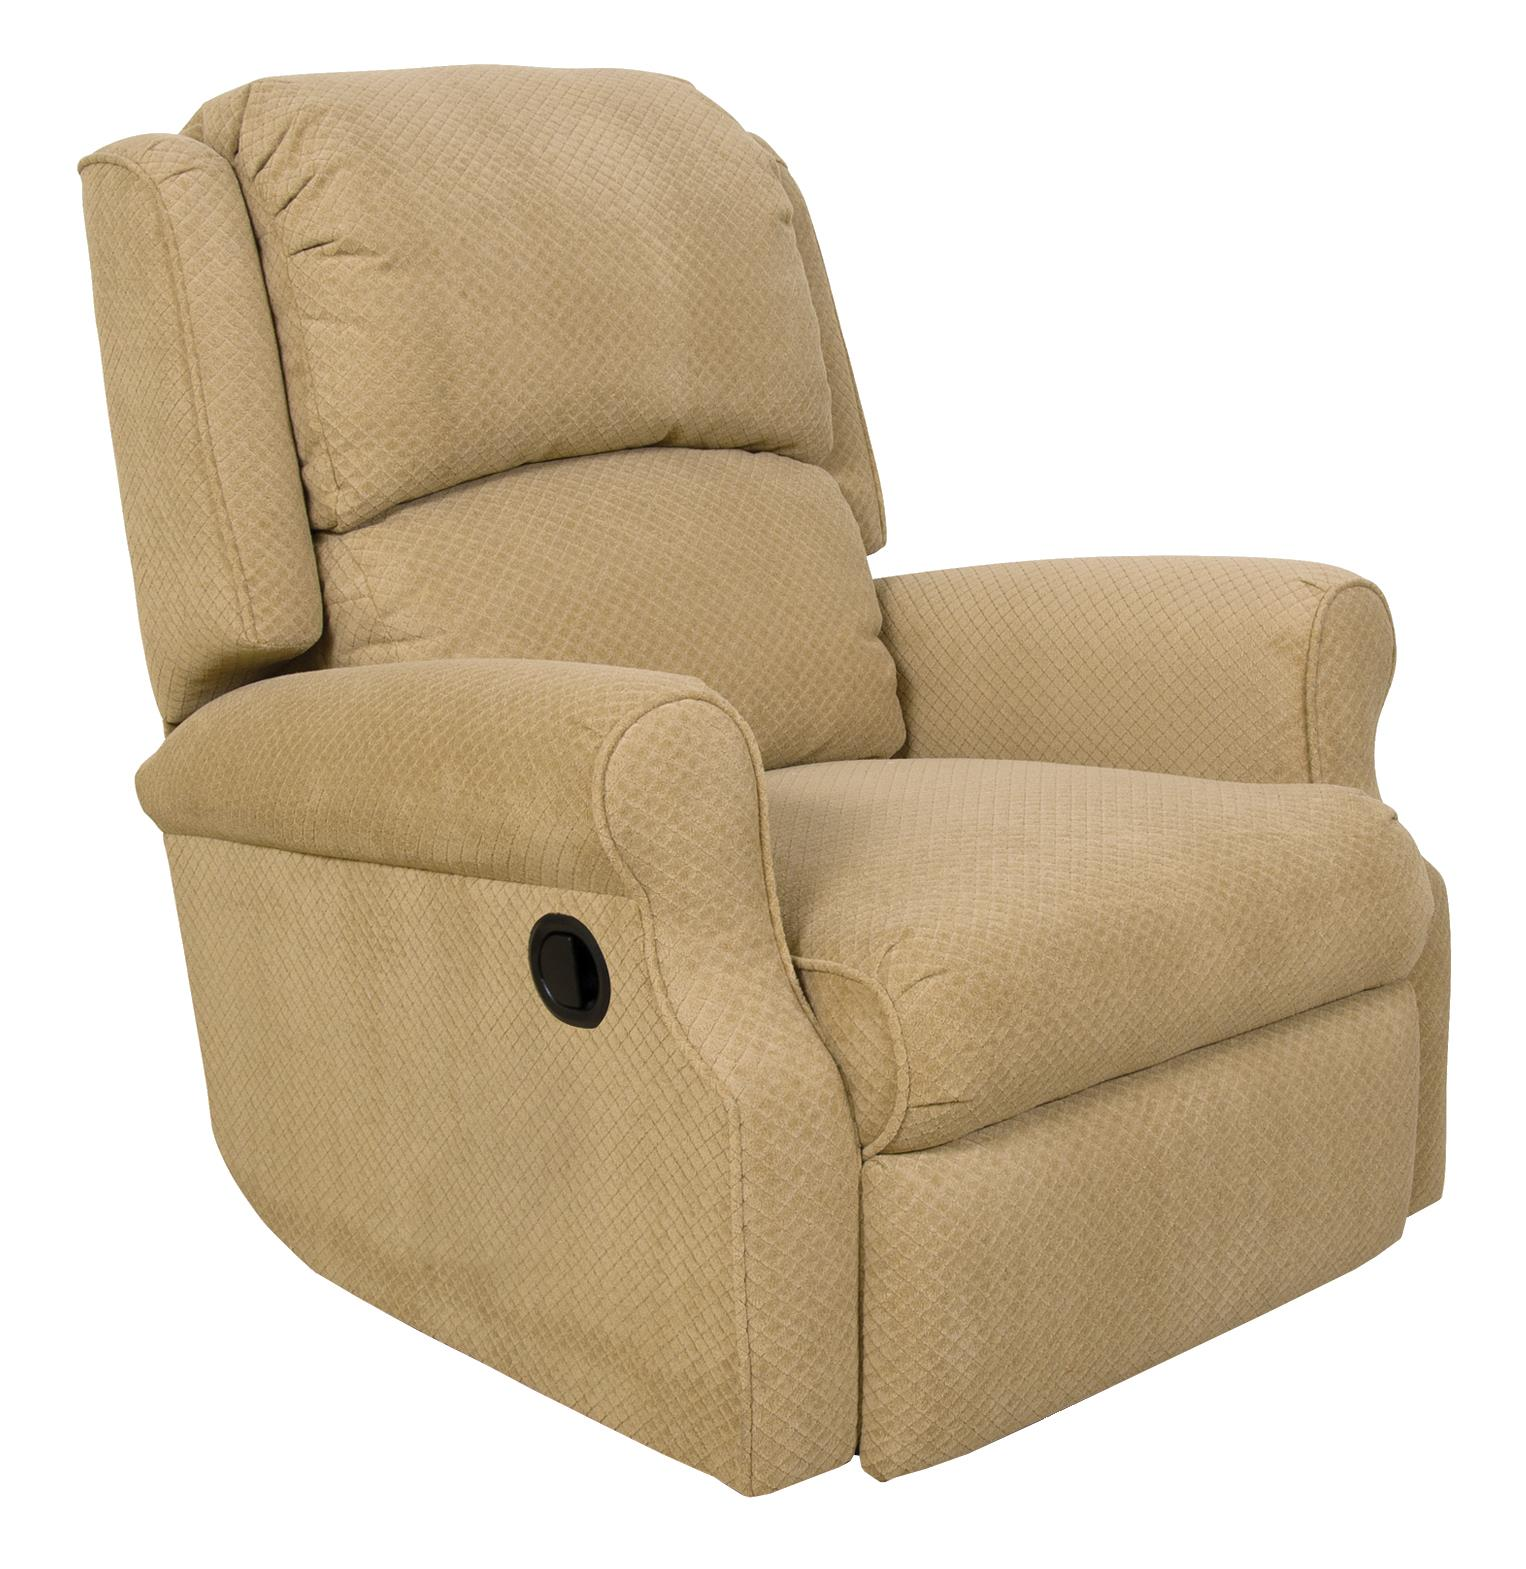 Marybeth Min Prox Recliner with Power by England at Furniture Superstore - Rochester, MN